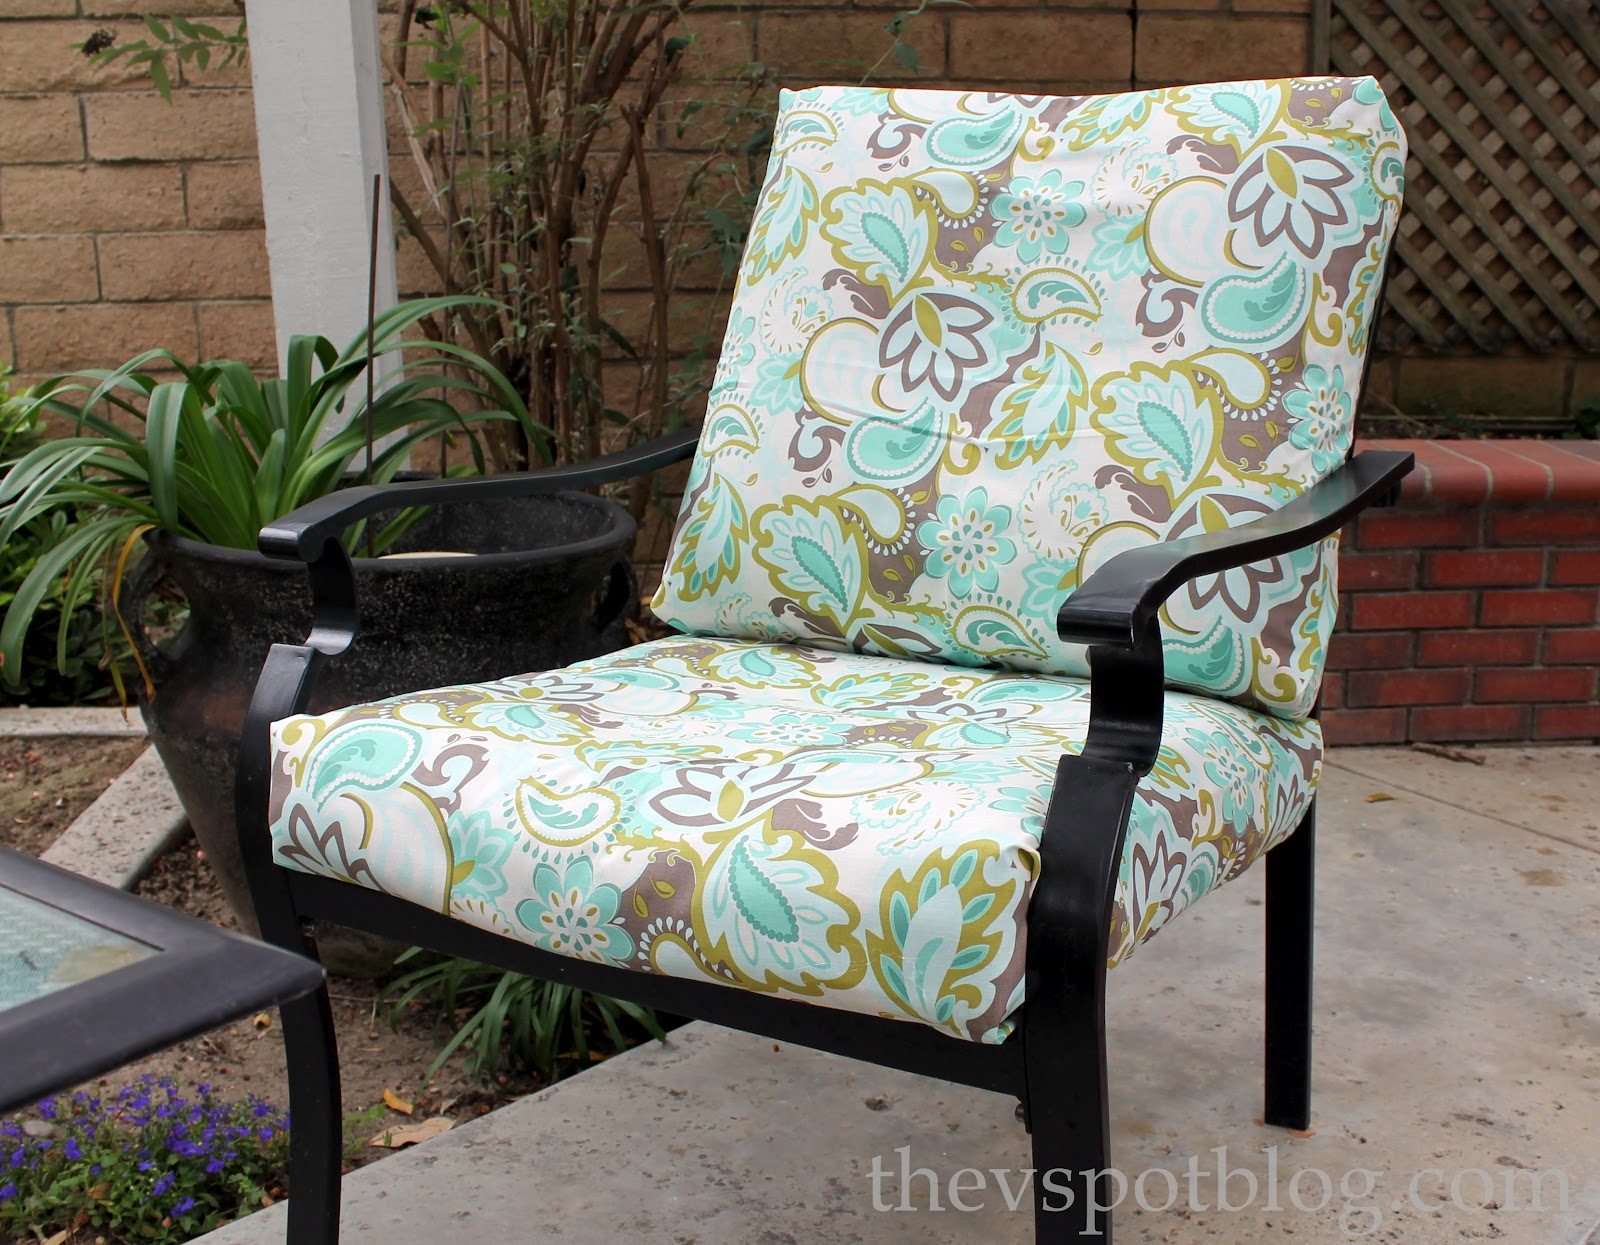 Recover your outdoor cushions no sewing kidsncoupons for Best material for outdoor furniture